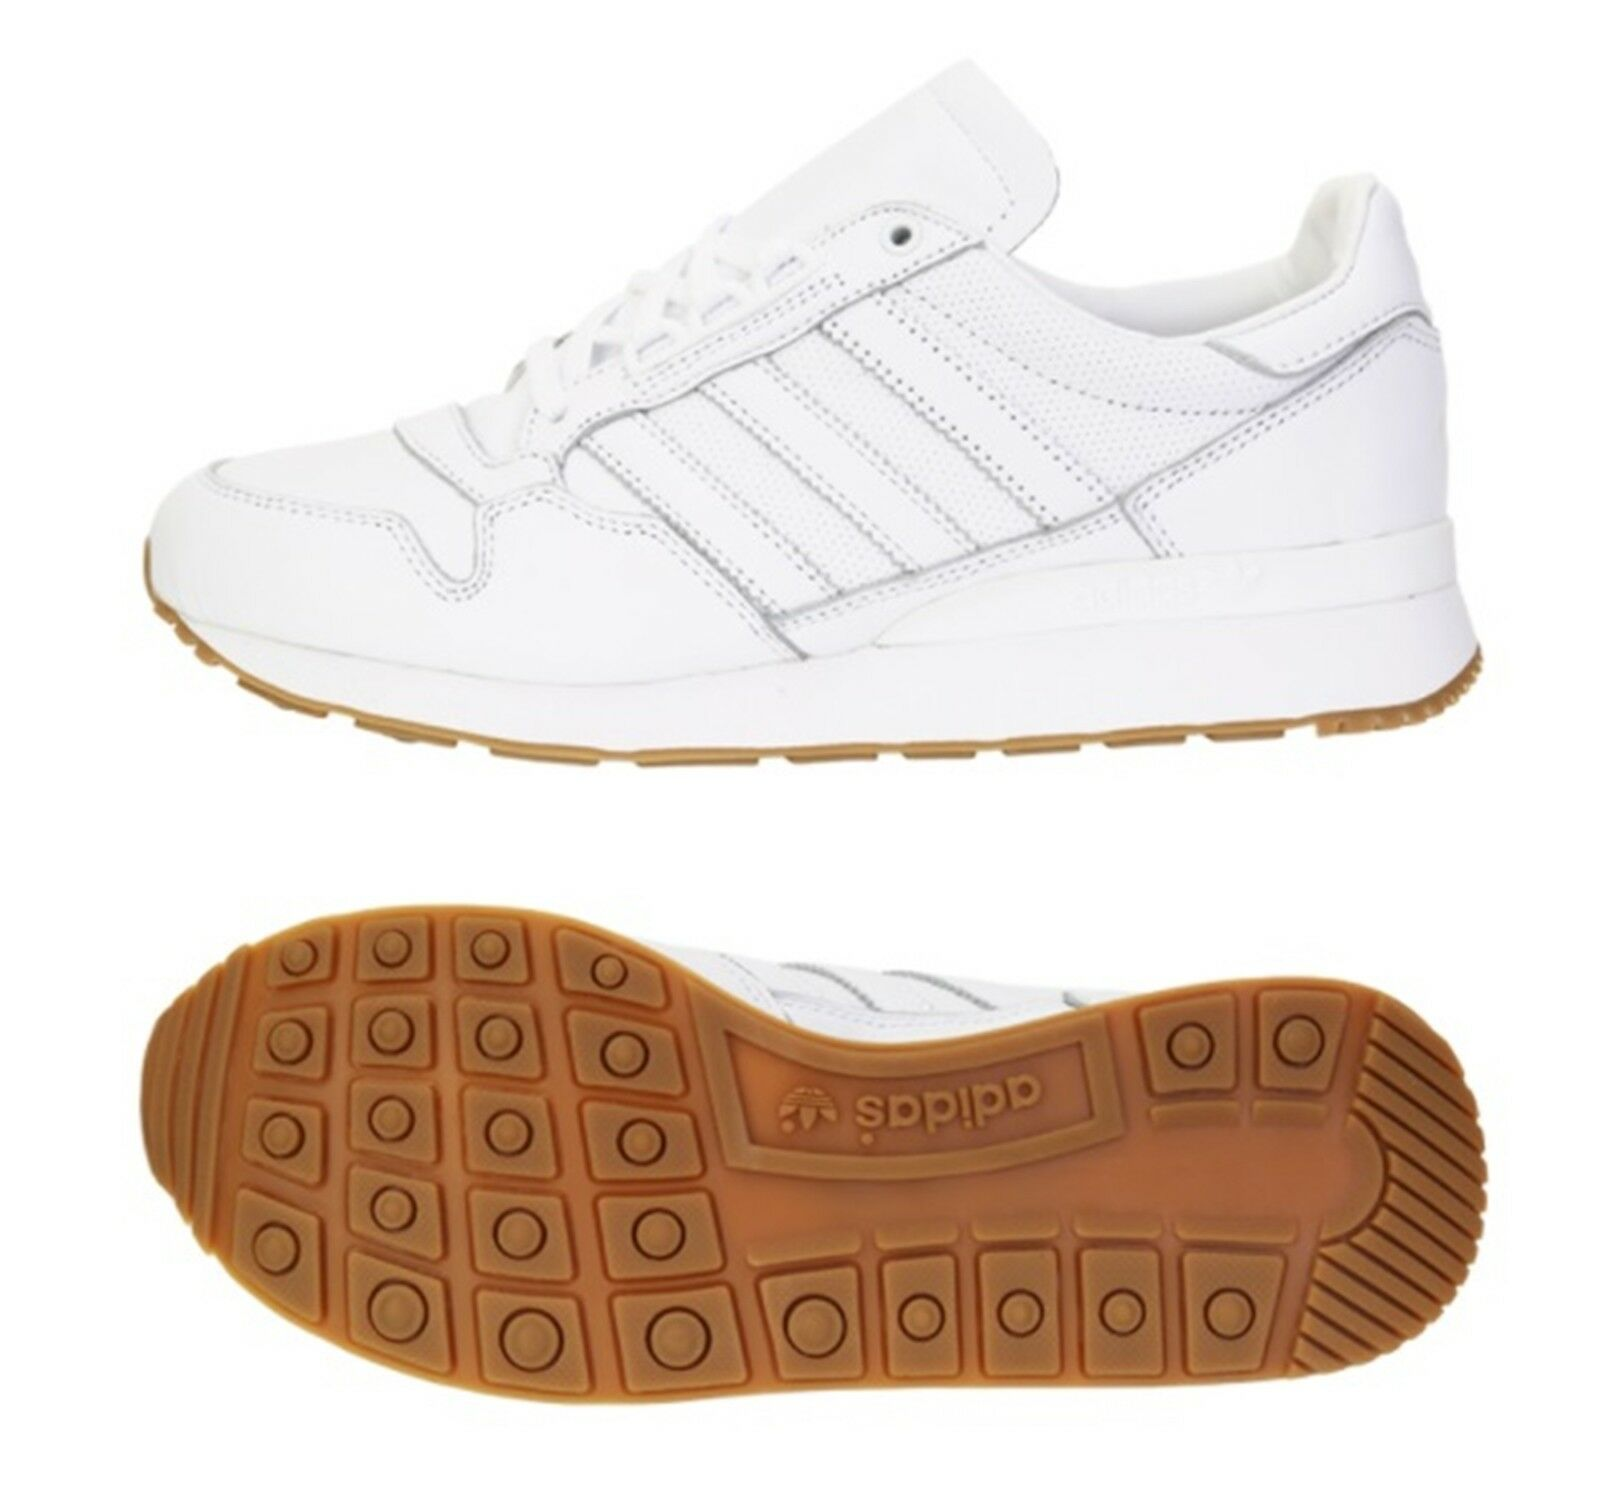 Adidas Men Originals ZX 500 OG Training shoes White Running Sneakers shoes S79181